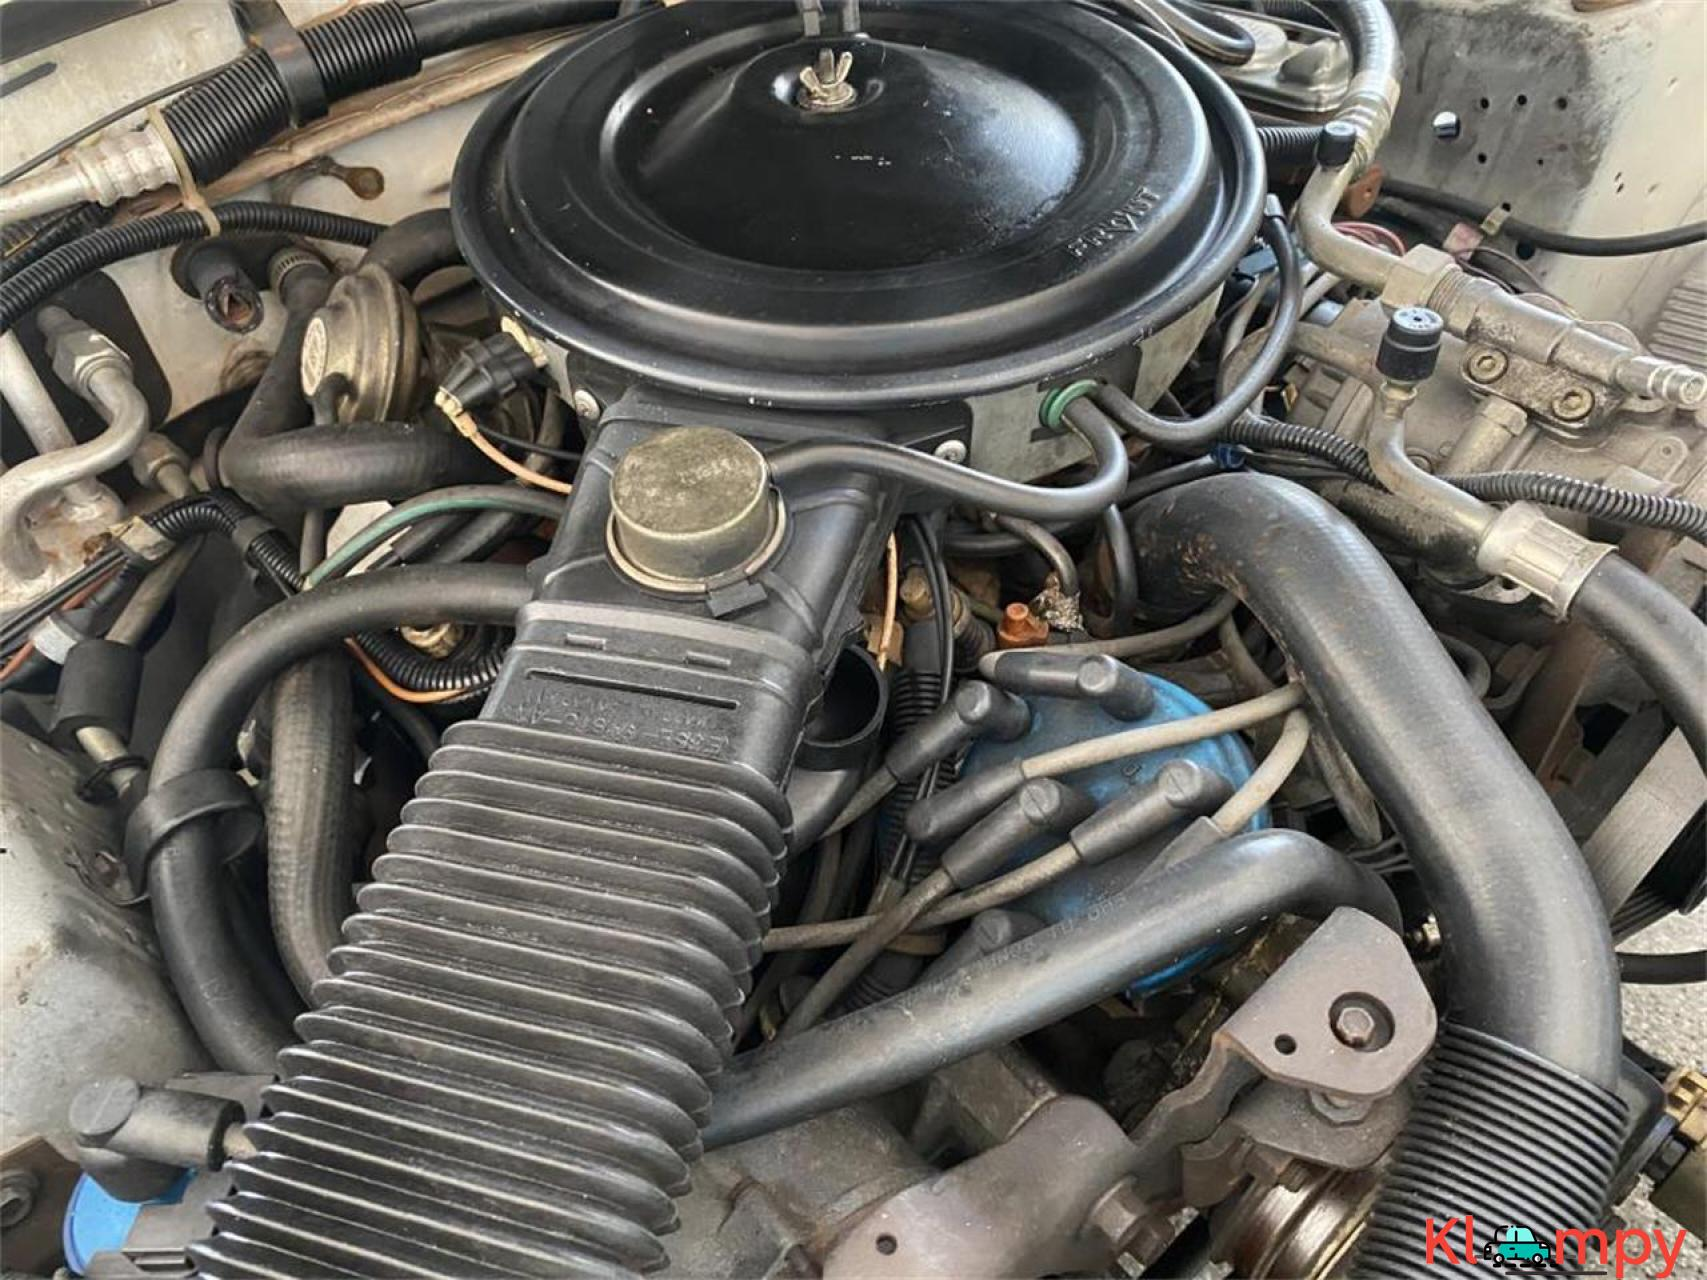 1983 Ford Mustang 3.8 LITRE V6 AUTO - 14/20